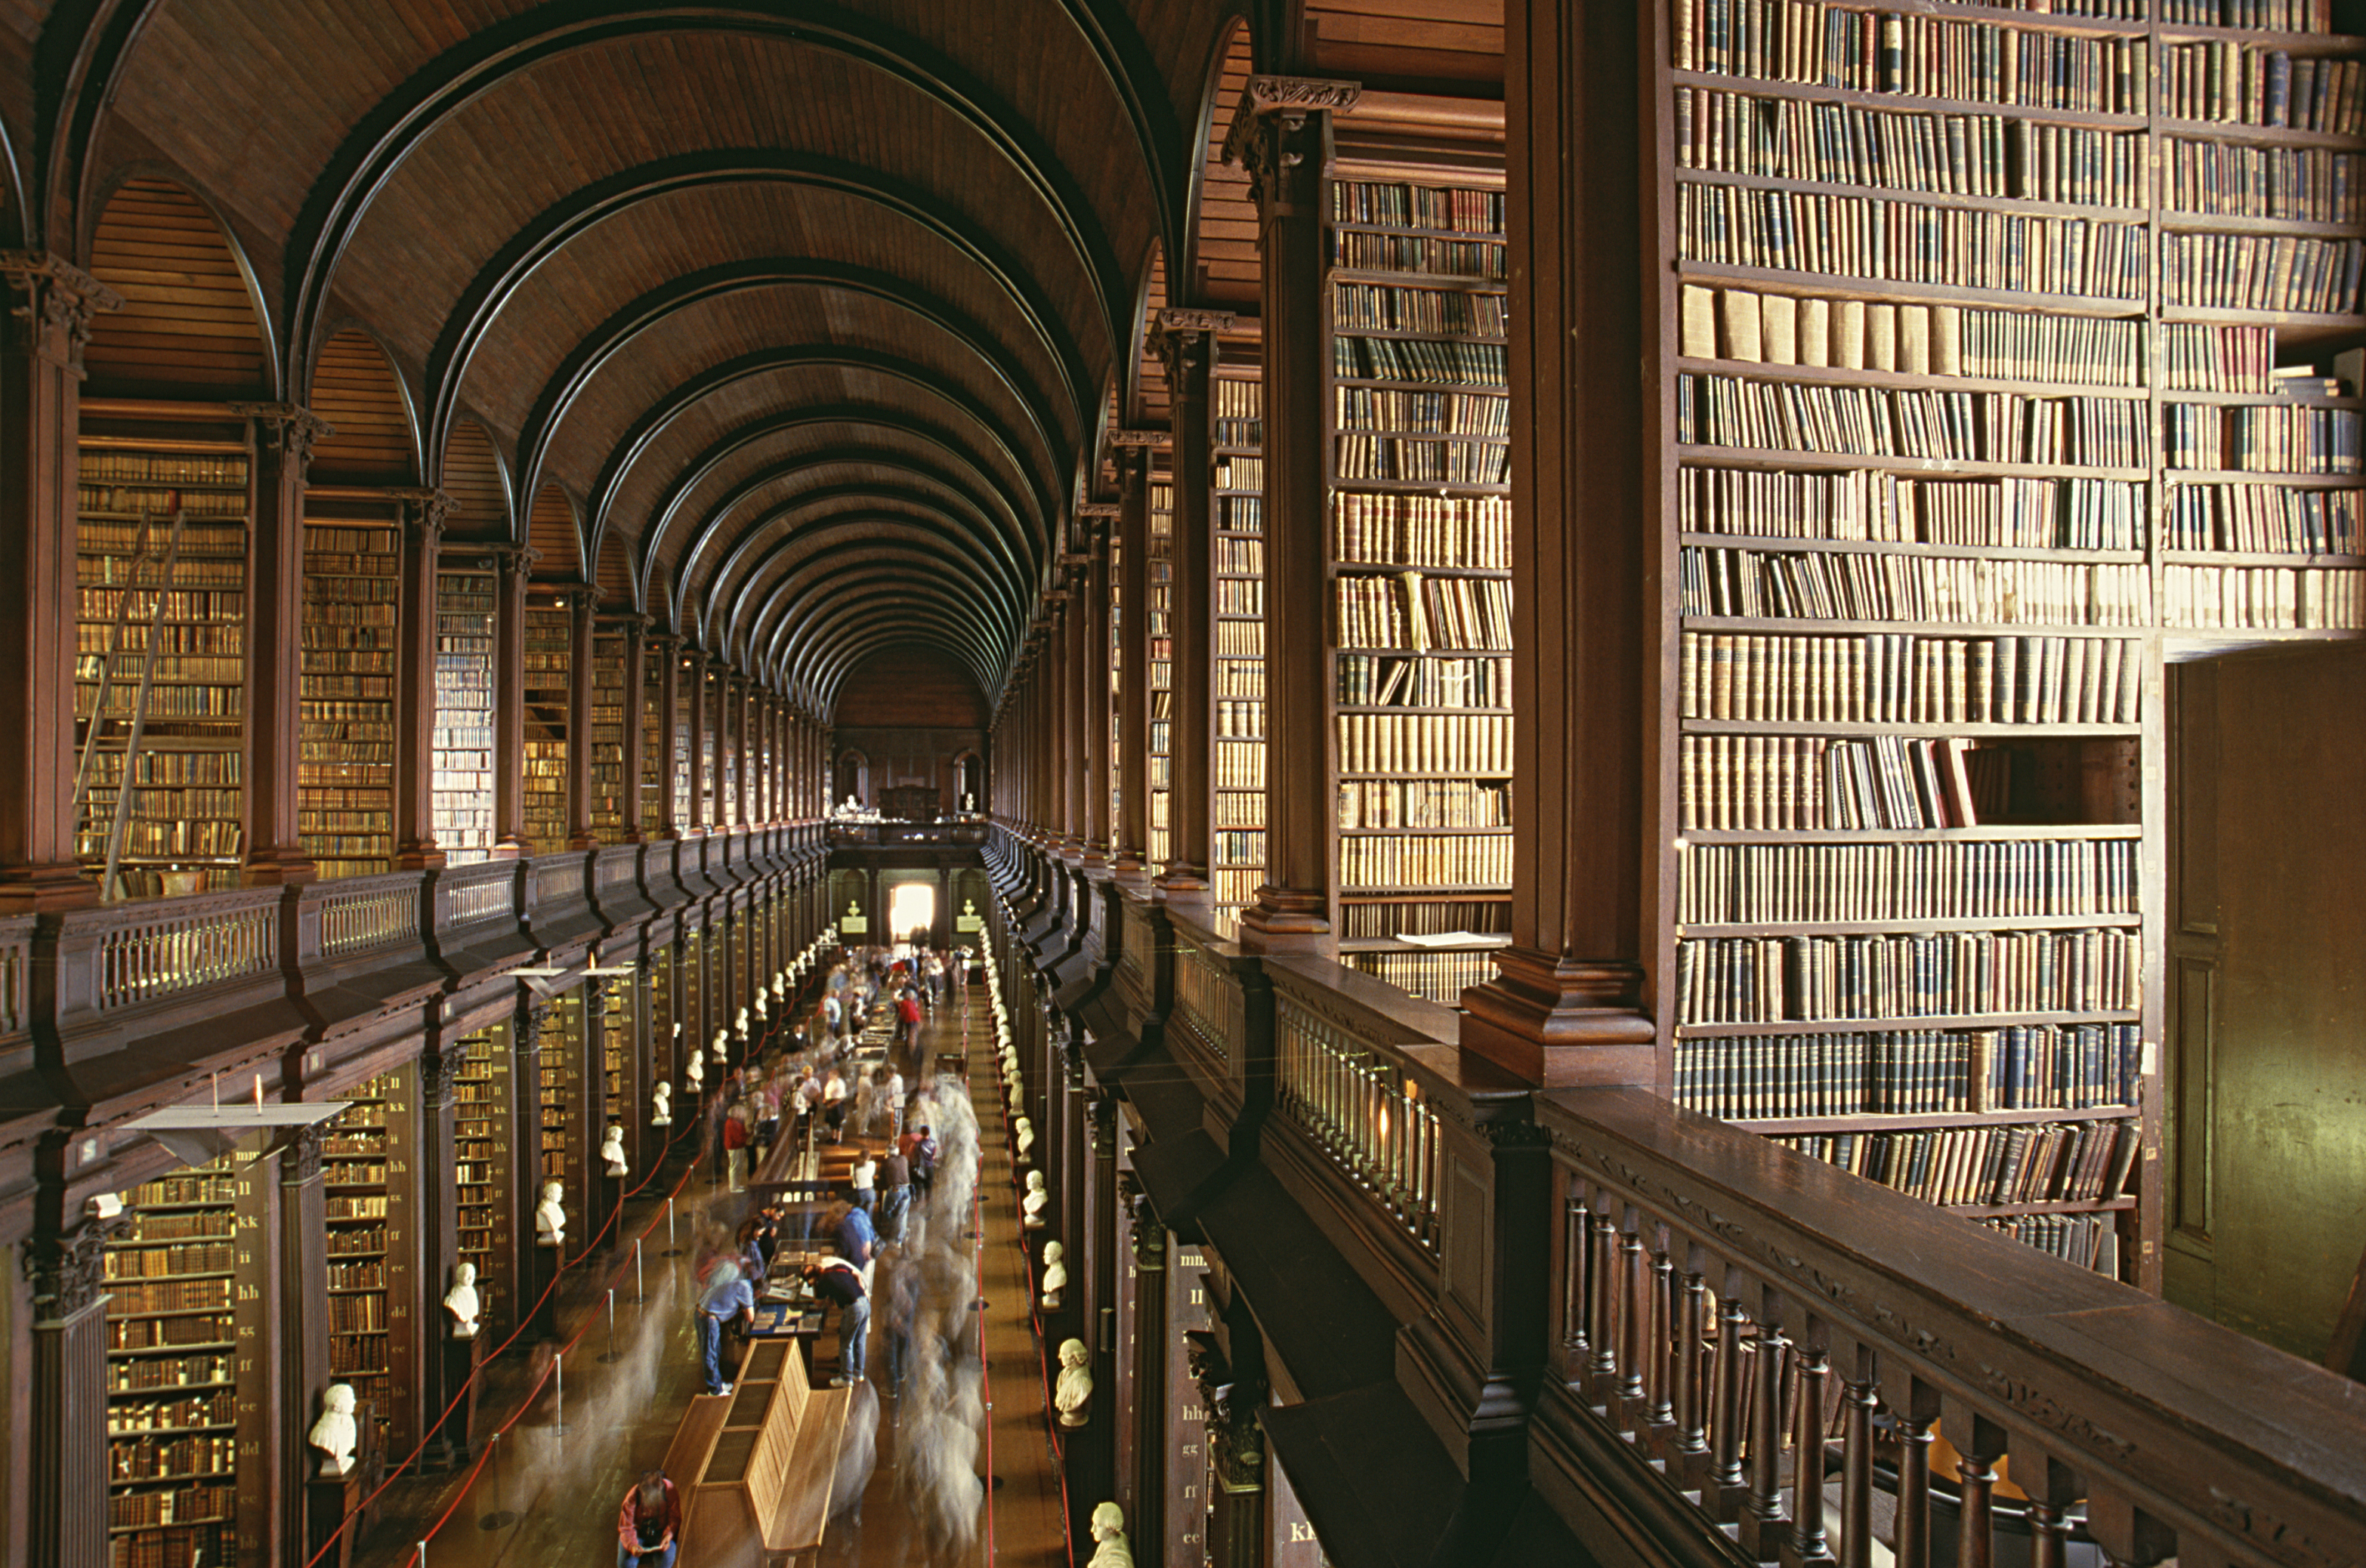 Trinity College | Dublin, Ireland Attractions - Lonely Planet